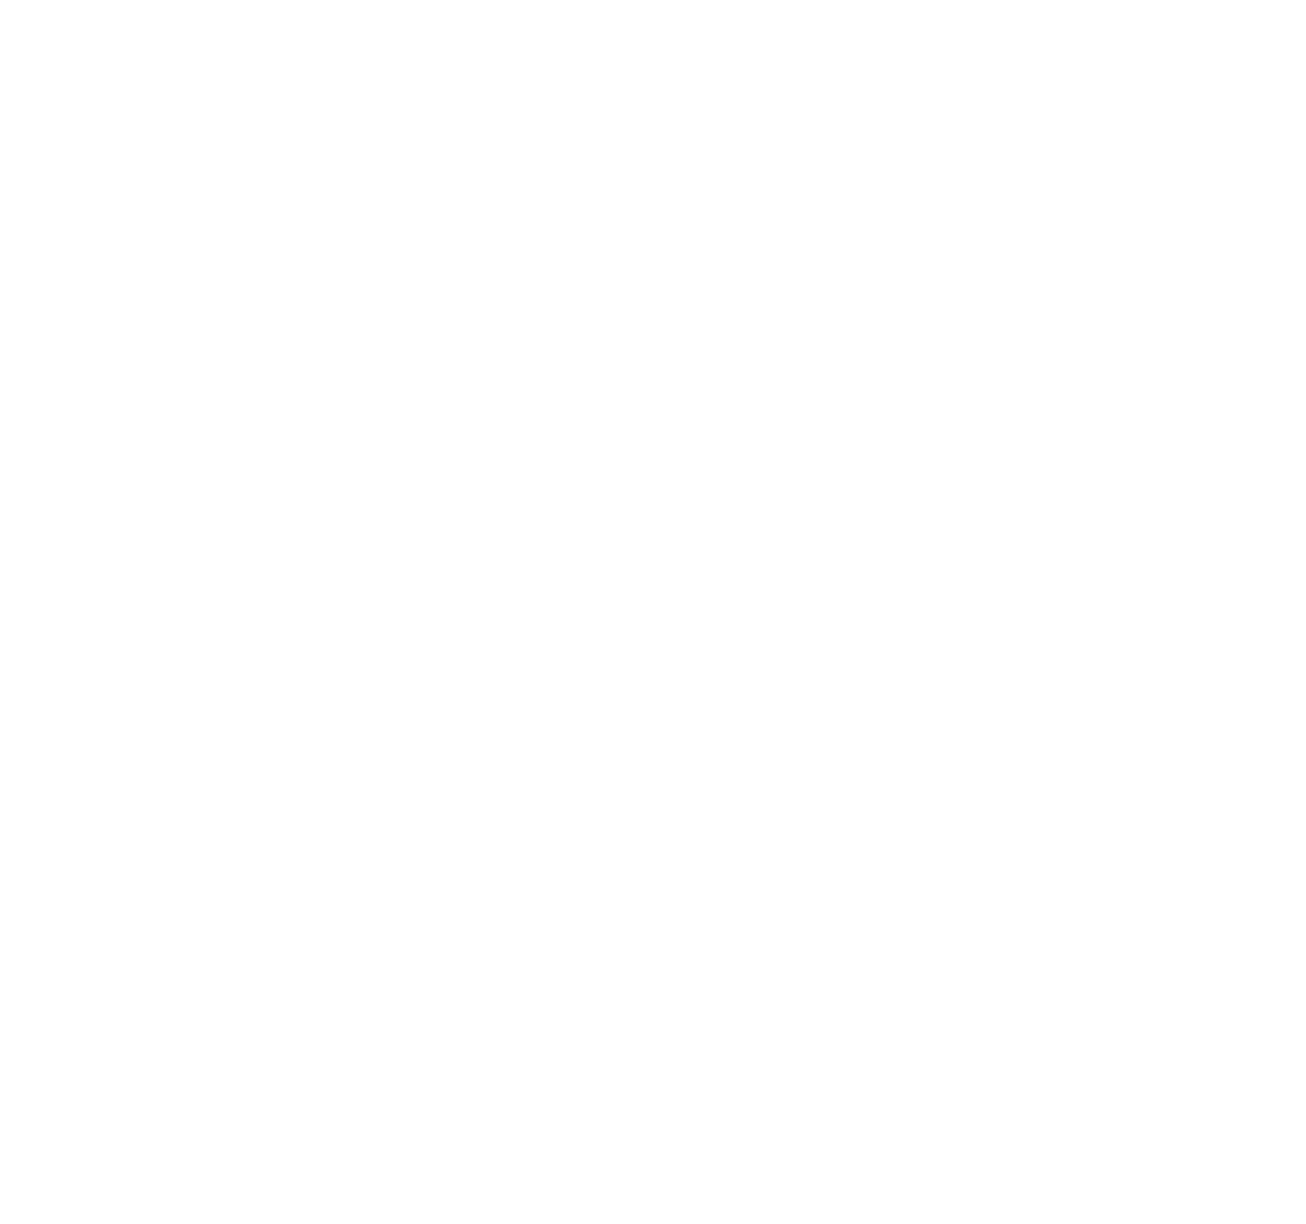 FPC 60 Years Seal White